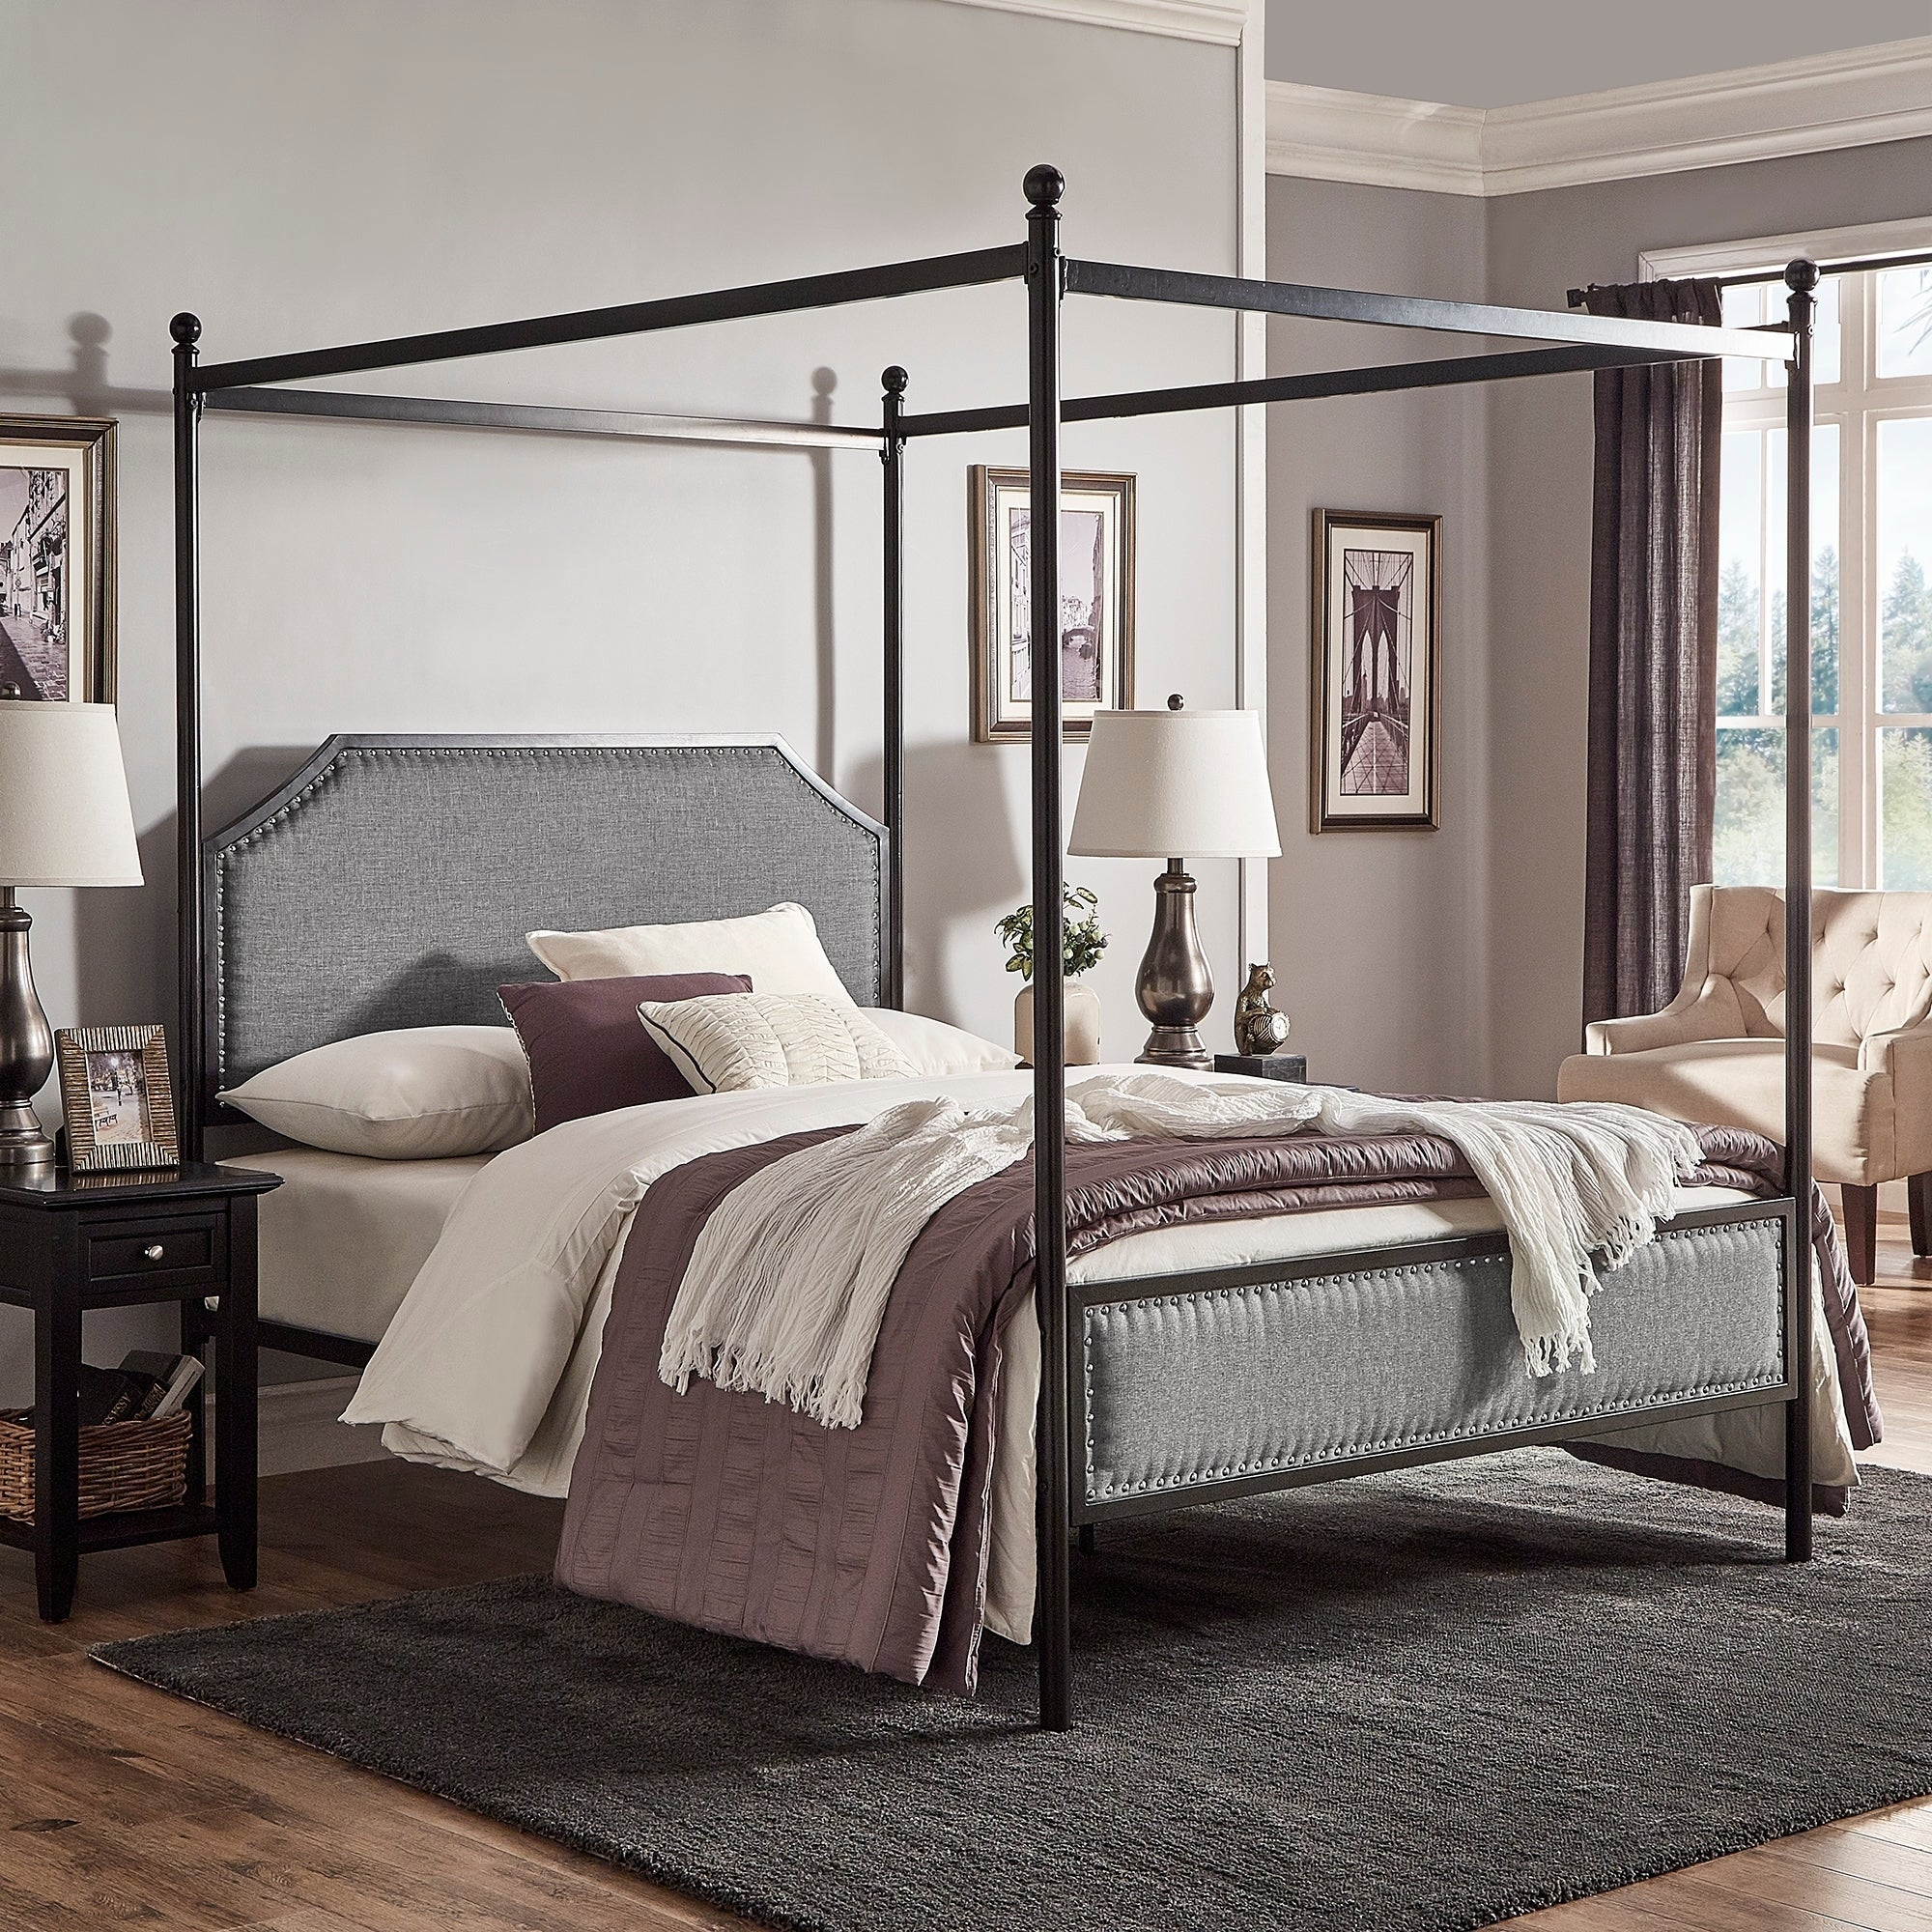 Picture of: Rayen Grey Upholstered Metal Canopy Queen Bed By Inspire Q Classic Overstock 27890304